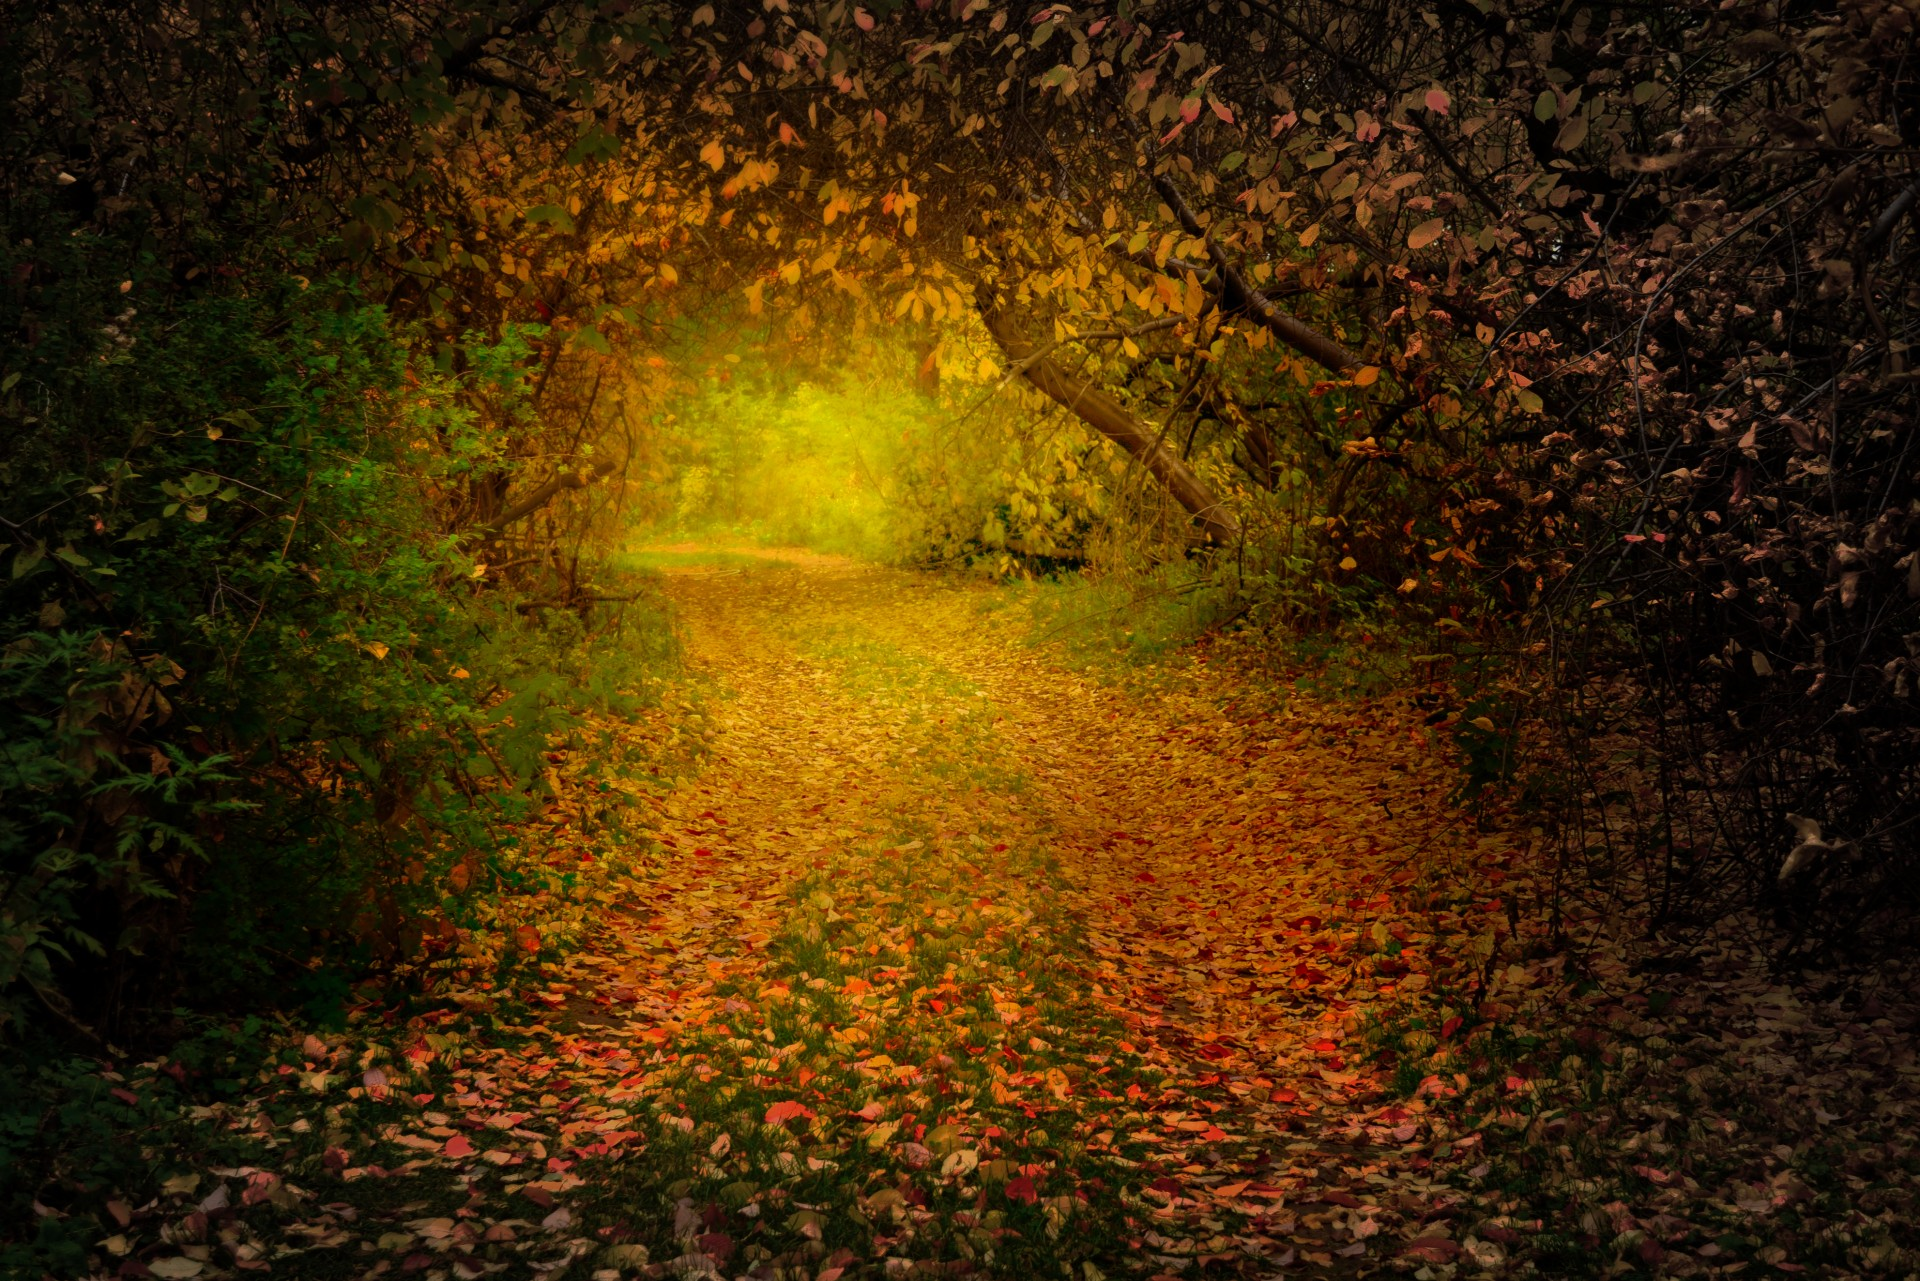 Wallpaper Images Of Fall Autumn Forest Free Stock Photo Public Domain Pictures